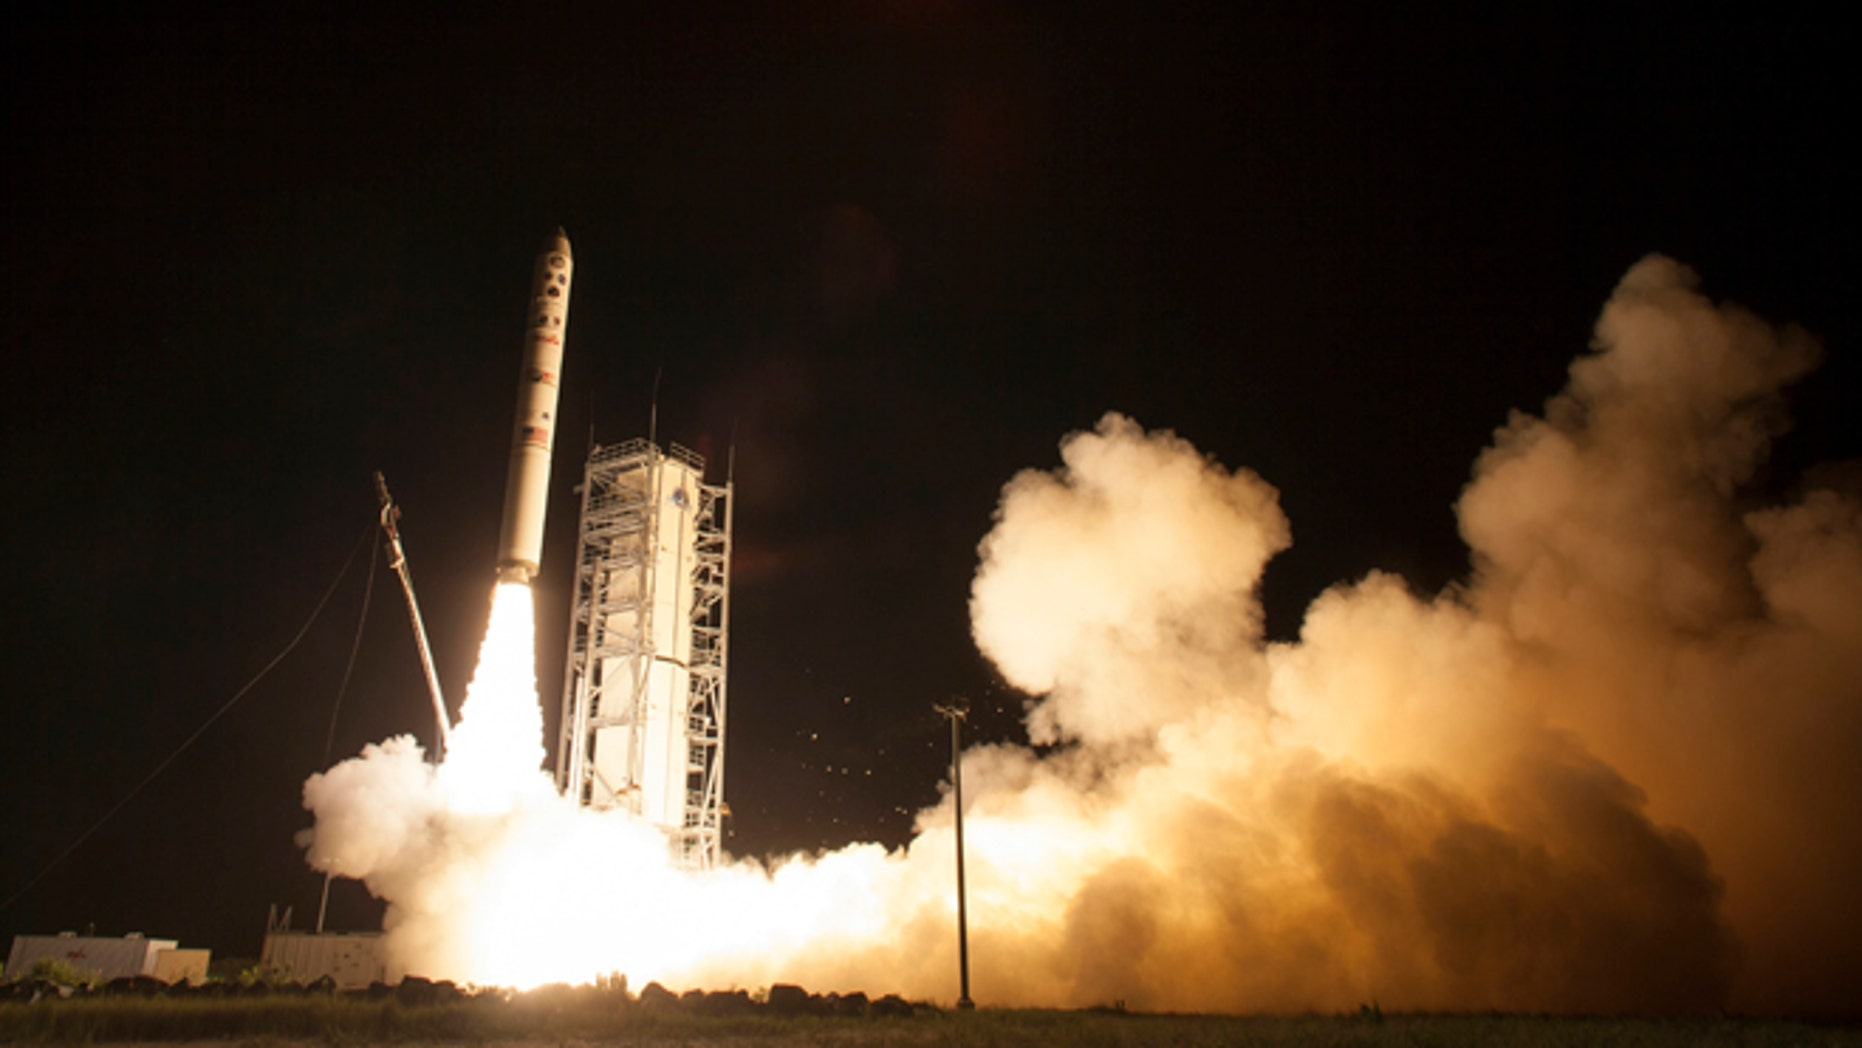 Sept. 6, 2013: In this photo provided by NASA, an unmanned Minotaur rocket carries NASA's newest robotic explorer, the LADEE spacecraft, which is charged with studying the lunar atmosphere and dust, after launching to the moon from NASA's Wallops Flight Facility on Virginia's Eastern Shore.